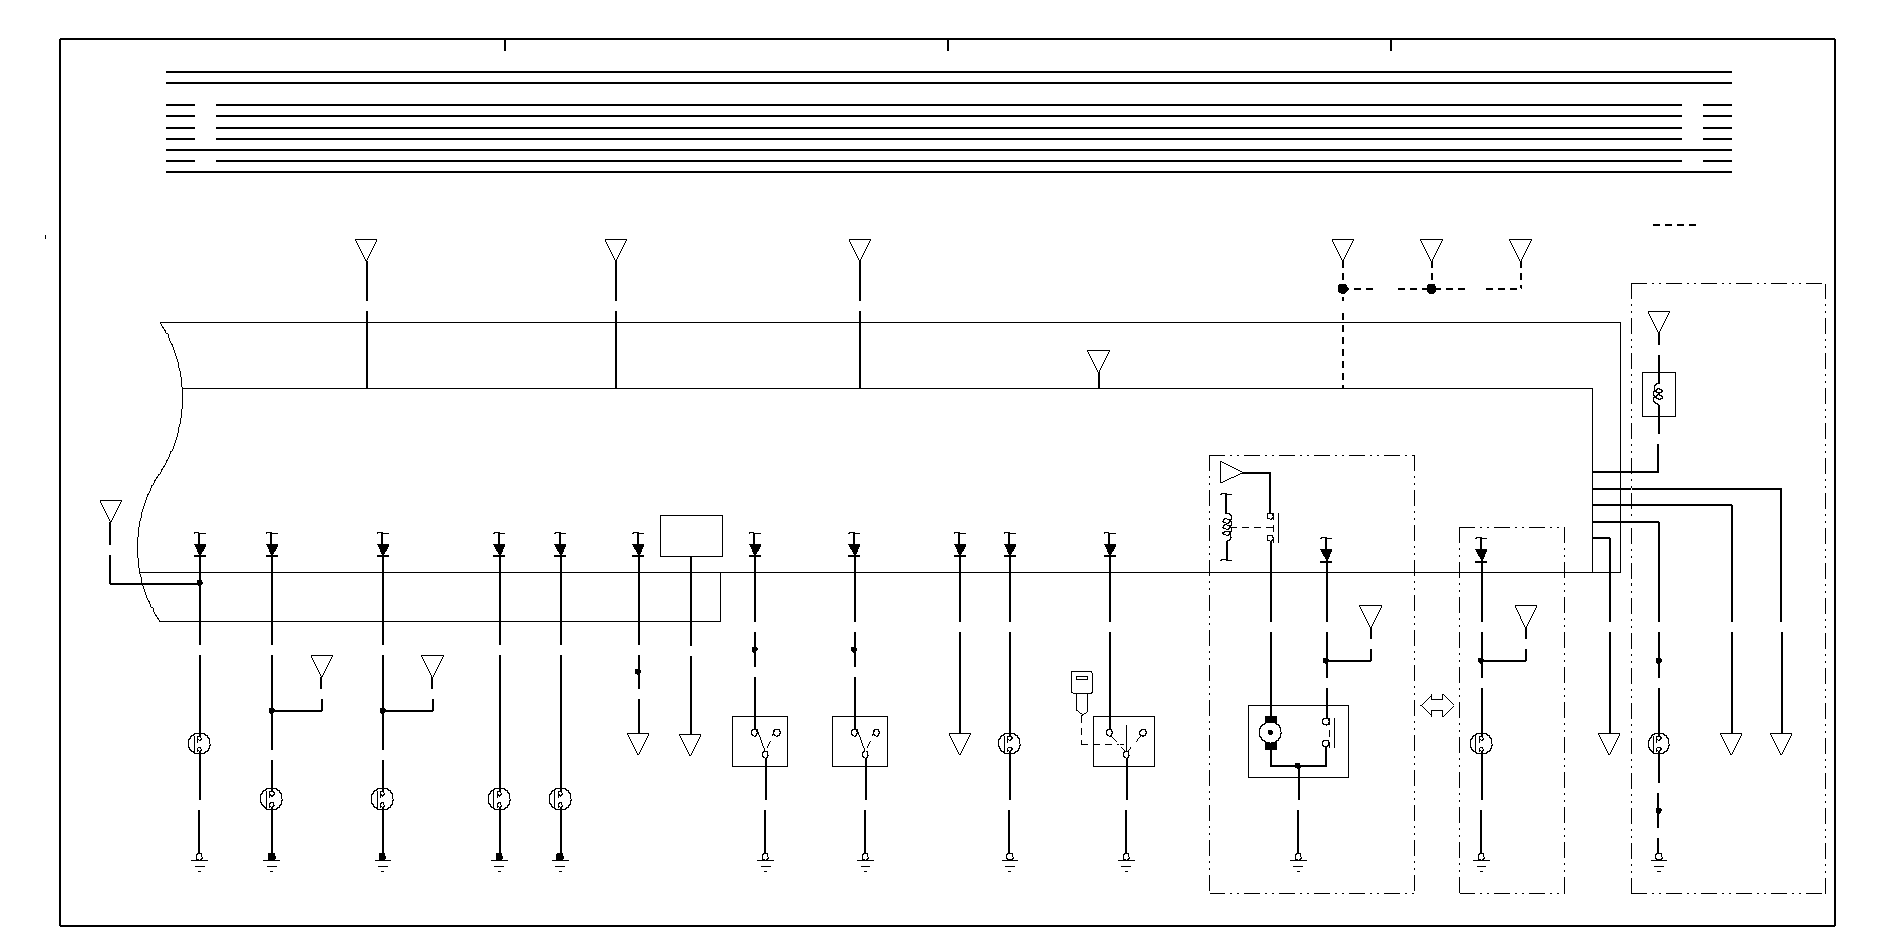 SNB6E00000000000000EBAD13?resize\\\\\\\=665%2C333 2008 mazda 3 wiring diagram wiring diagram shrutiradio 2008 mazda 3 wiring diagram manual at honlapkeszites.co